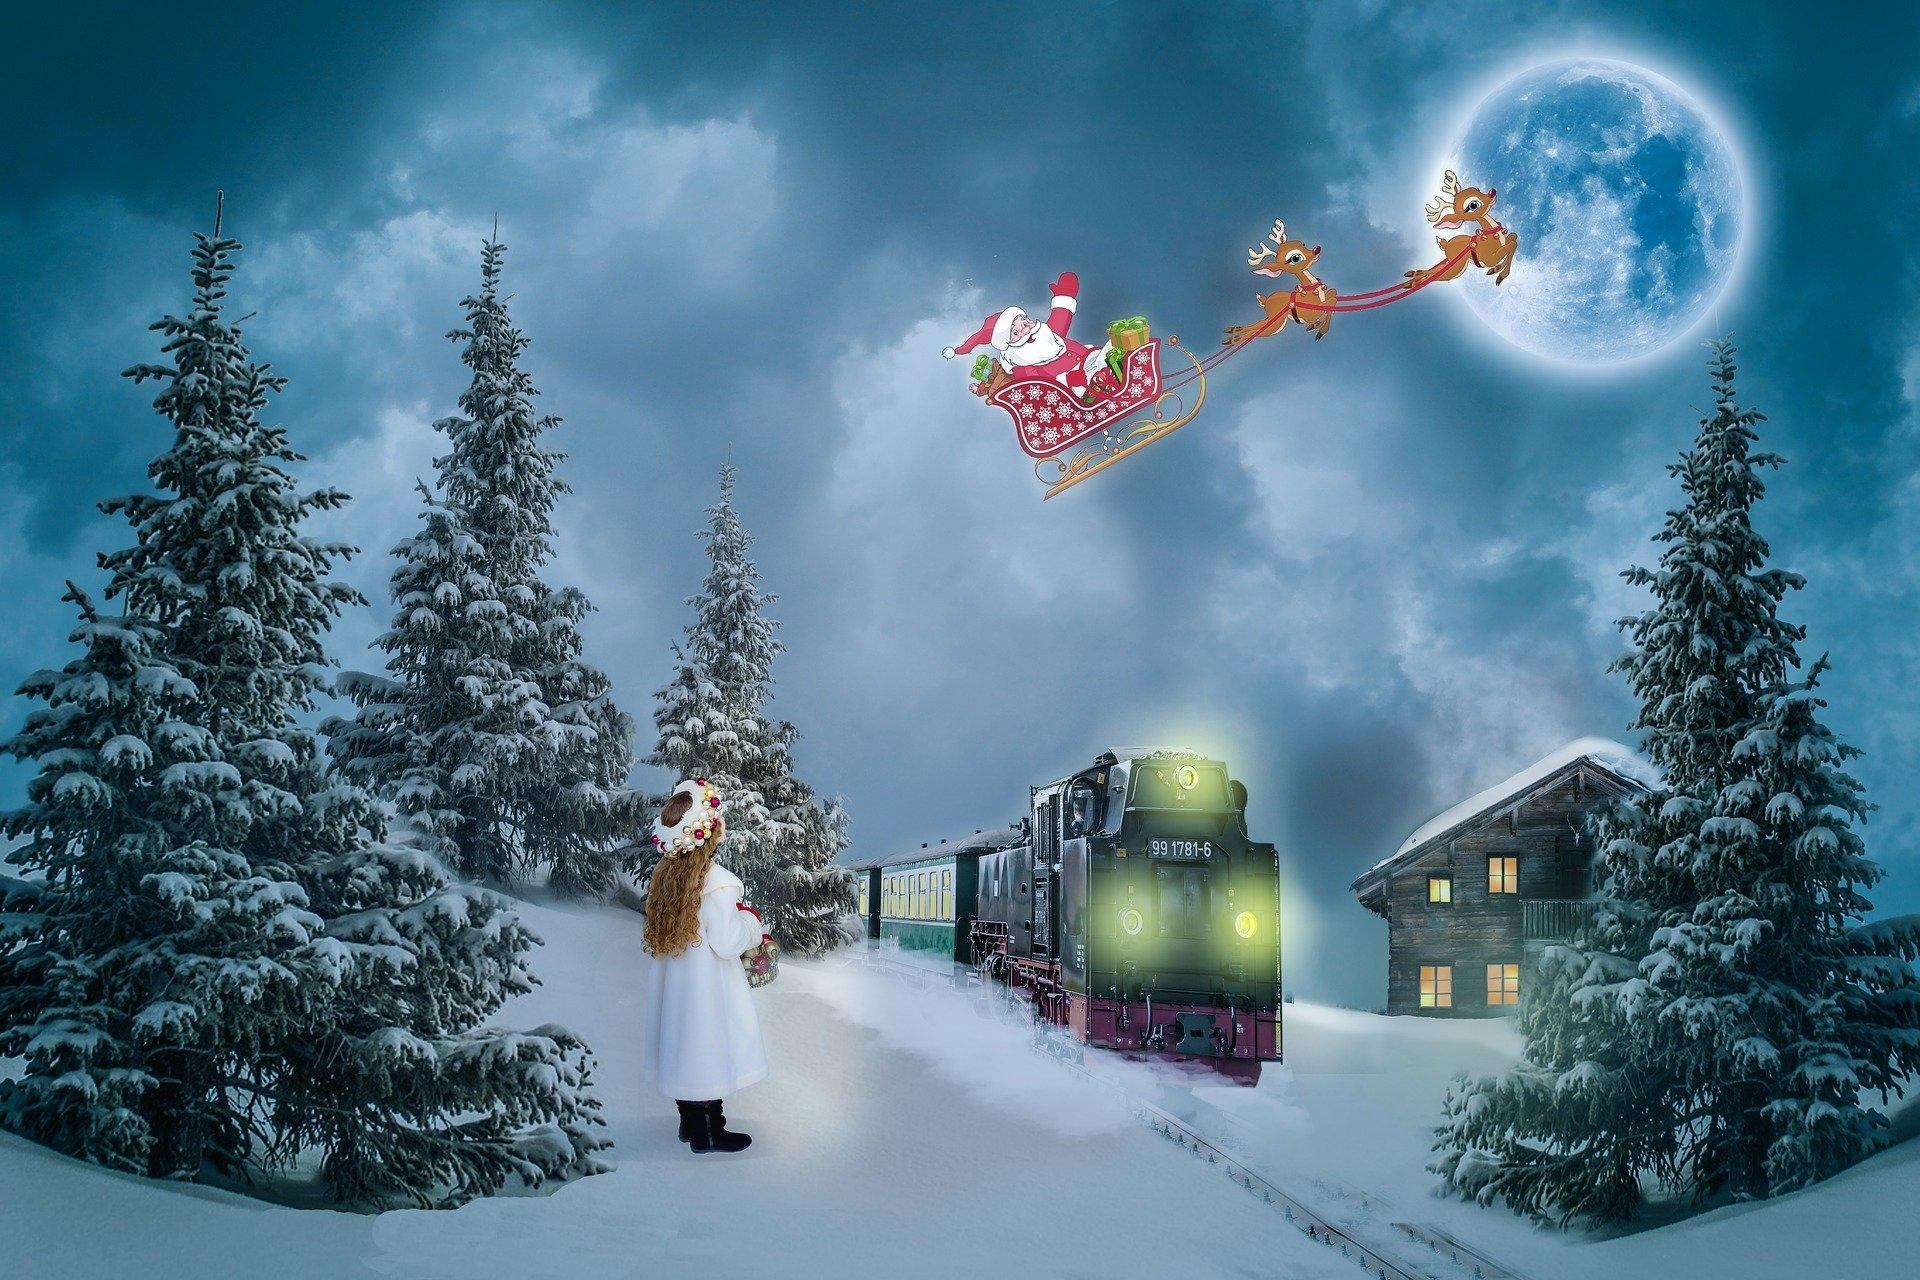 Download Christmas Train Wallpaper Hd Backgrounds Download